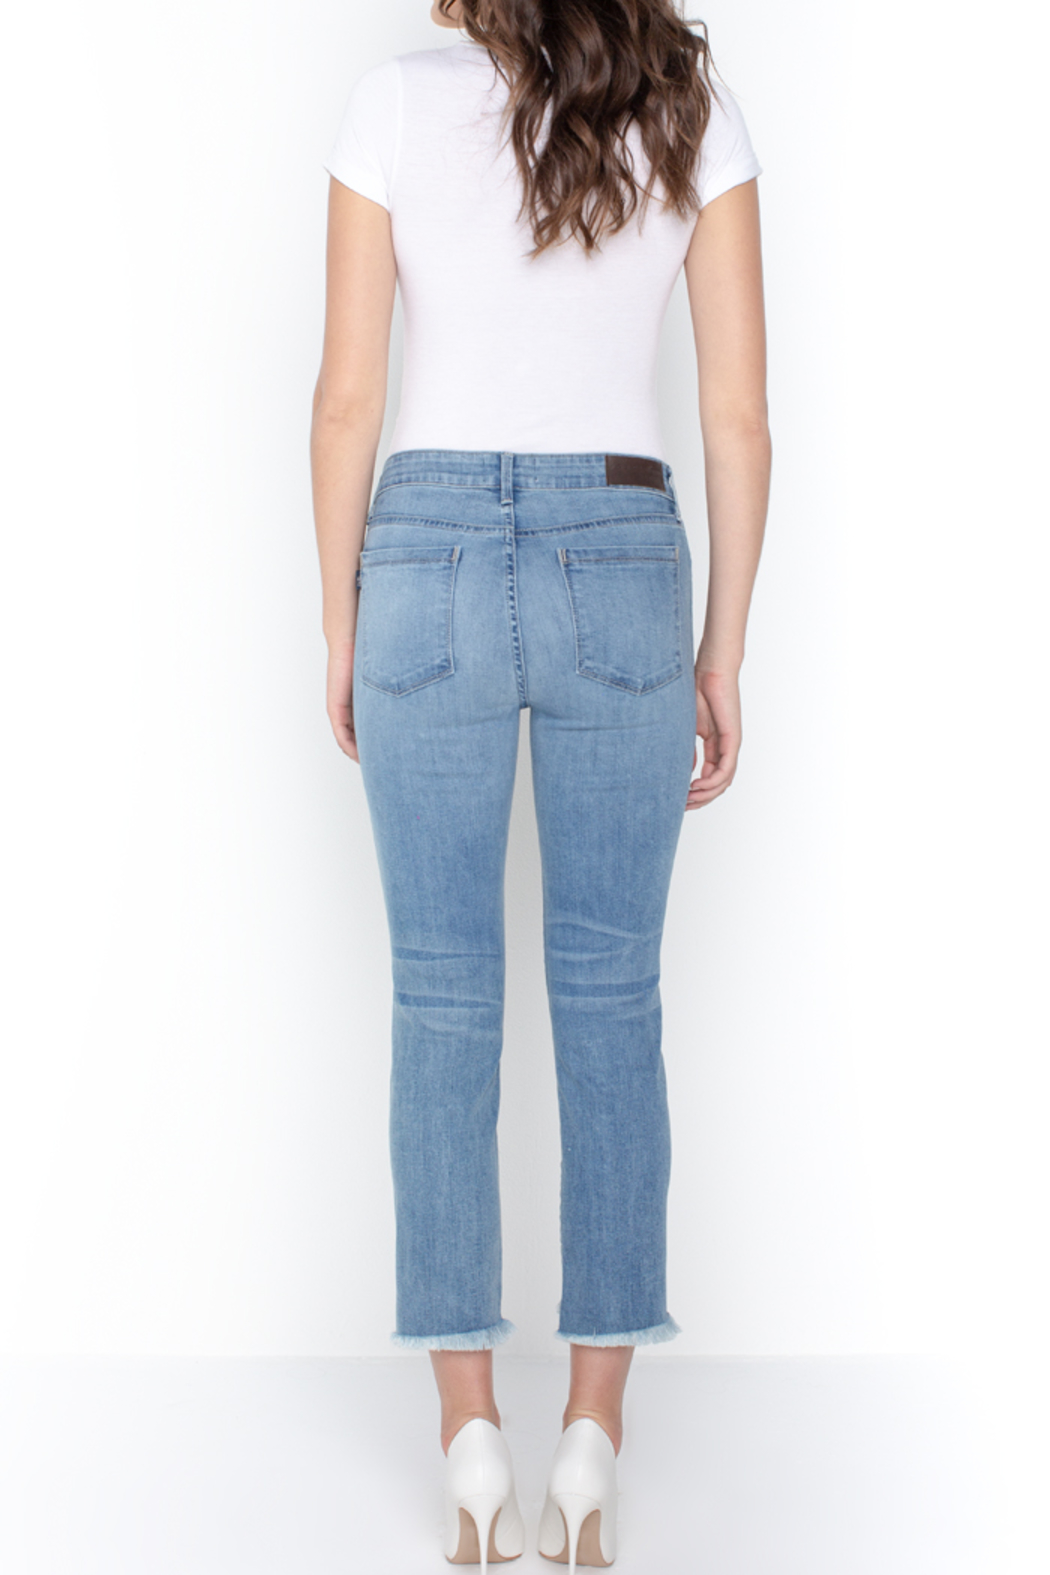 Parker Smith  HIGH-LOW STRAIGHT JEAN - Back Cropped Image